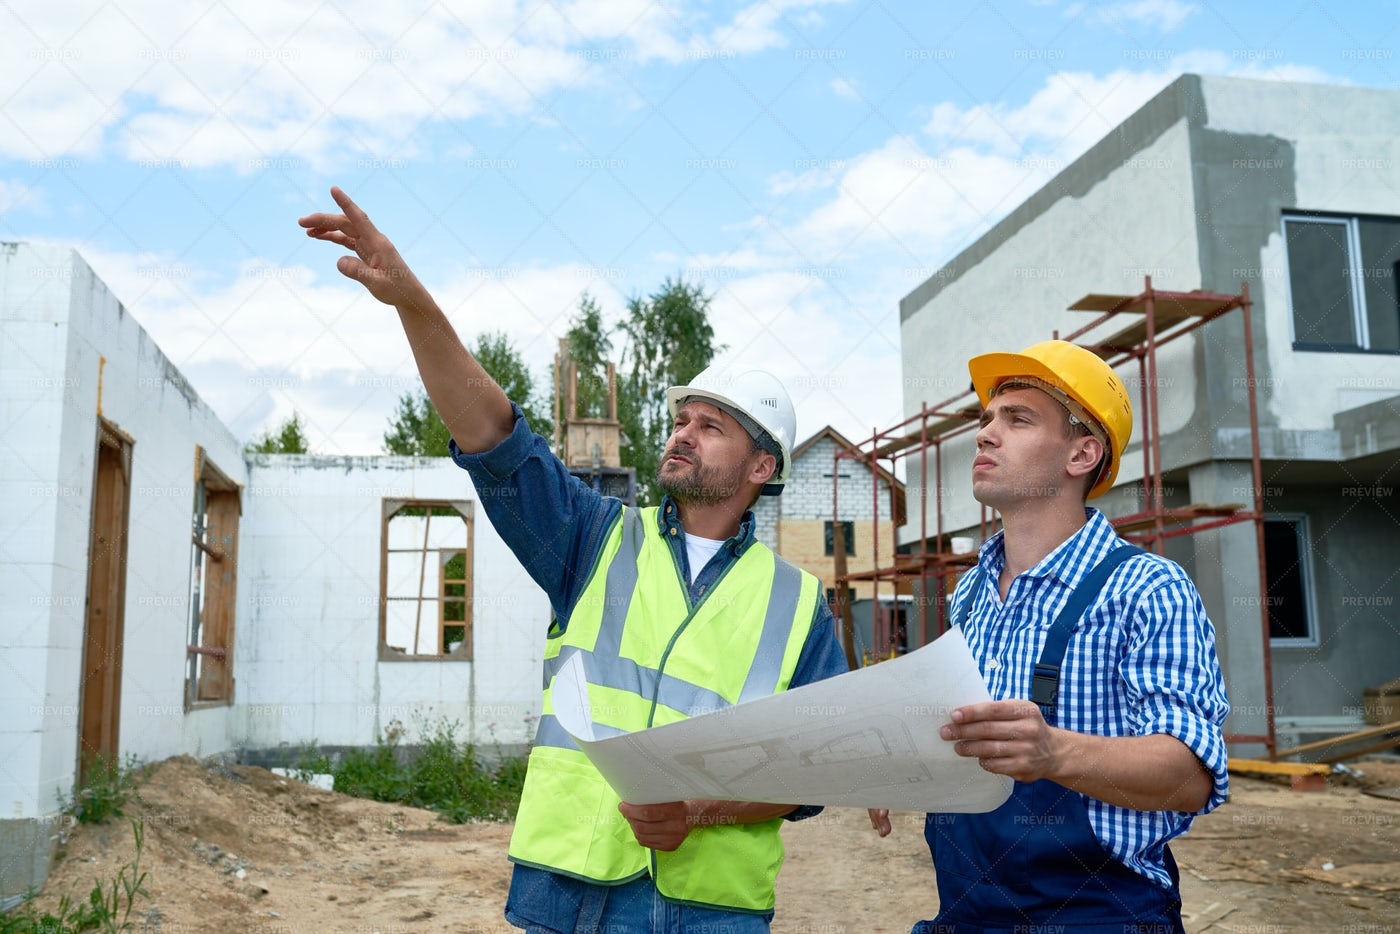 Foreman Overseeing Building...: Stock Photos